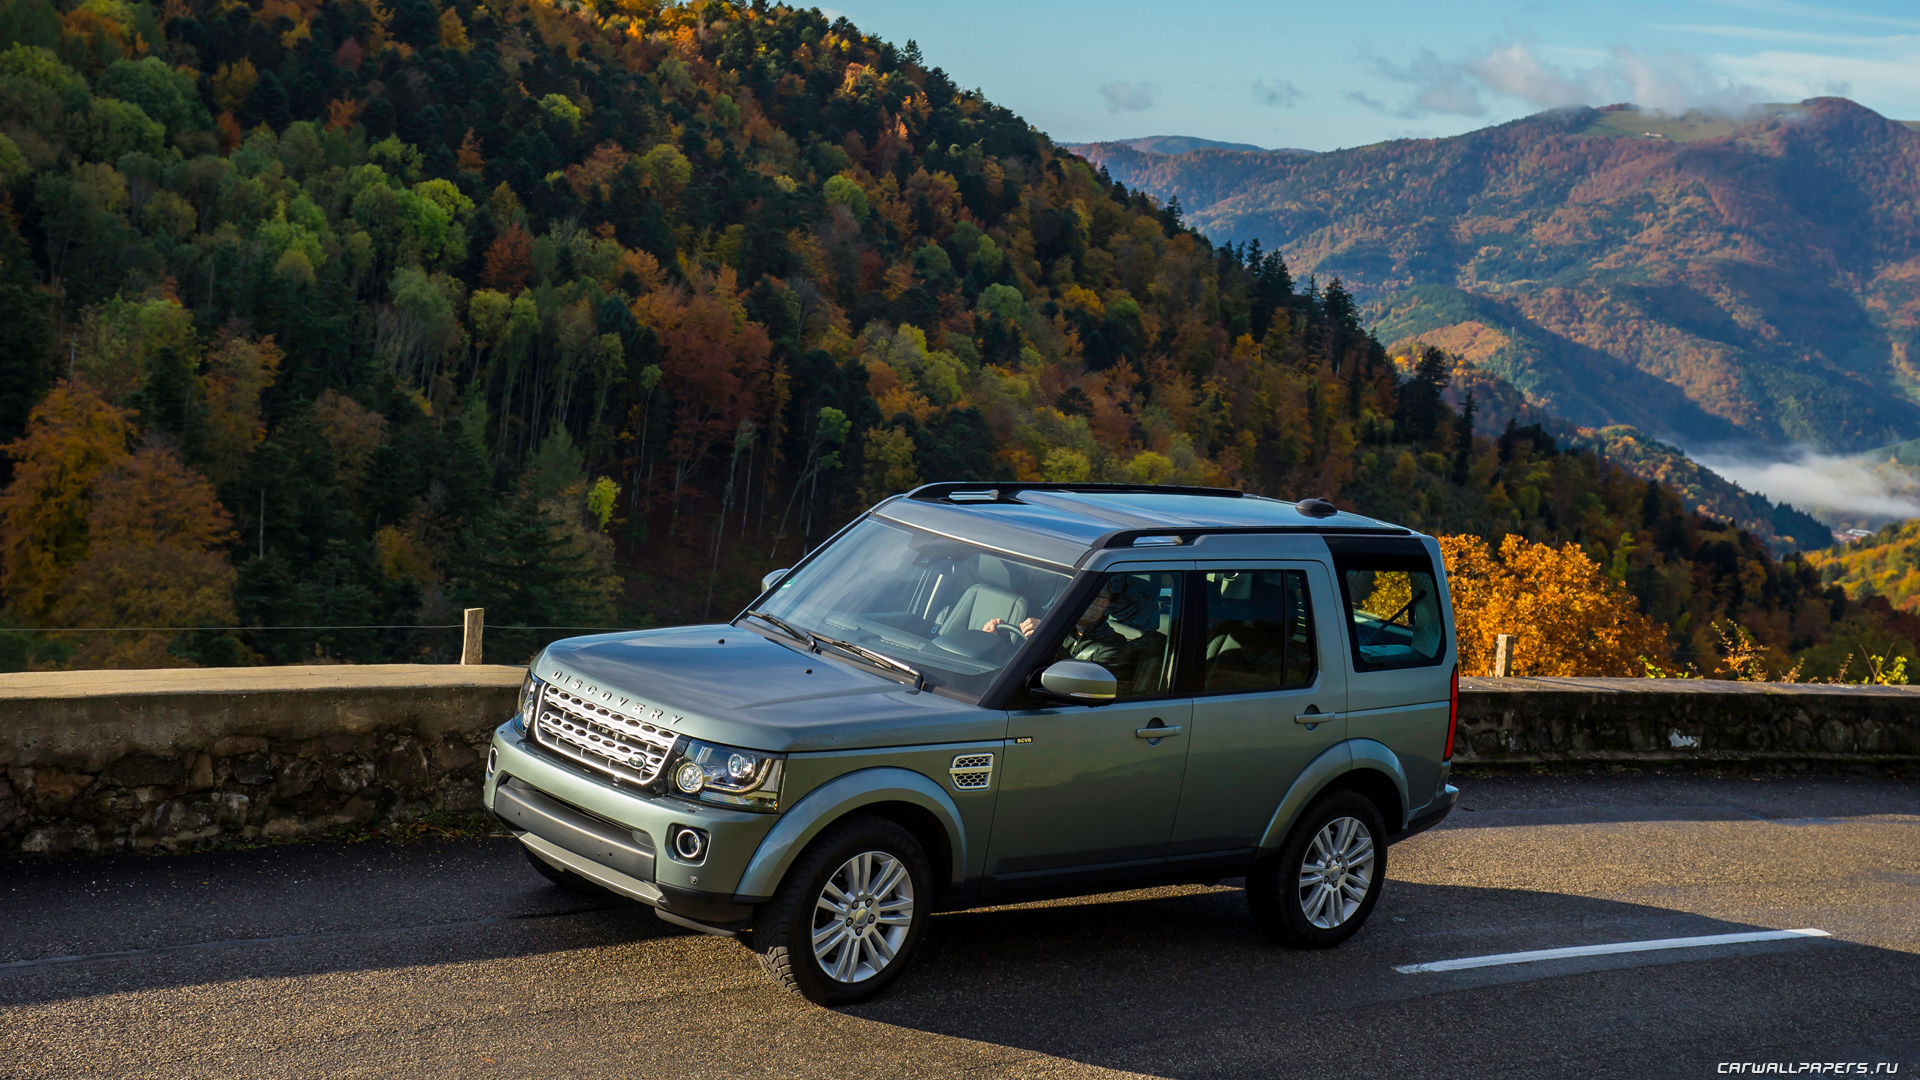 Land-Rover-Discovery-4-SCV6-HSE-2014-1920x1080-007